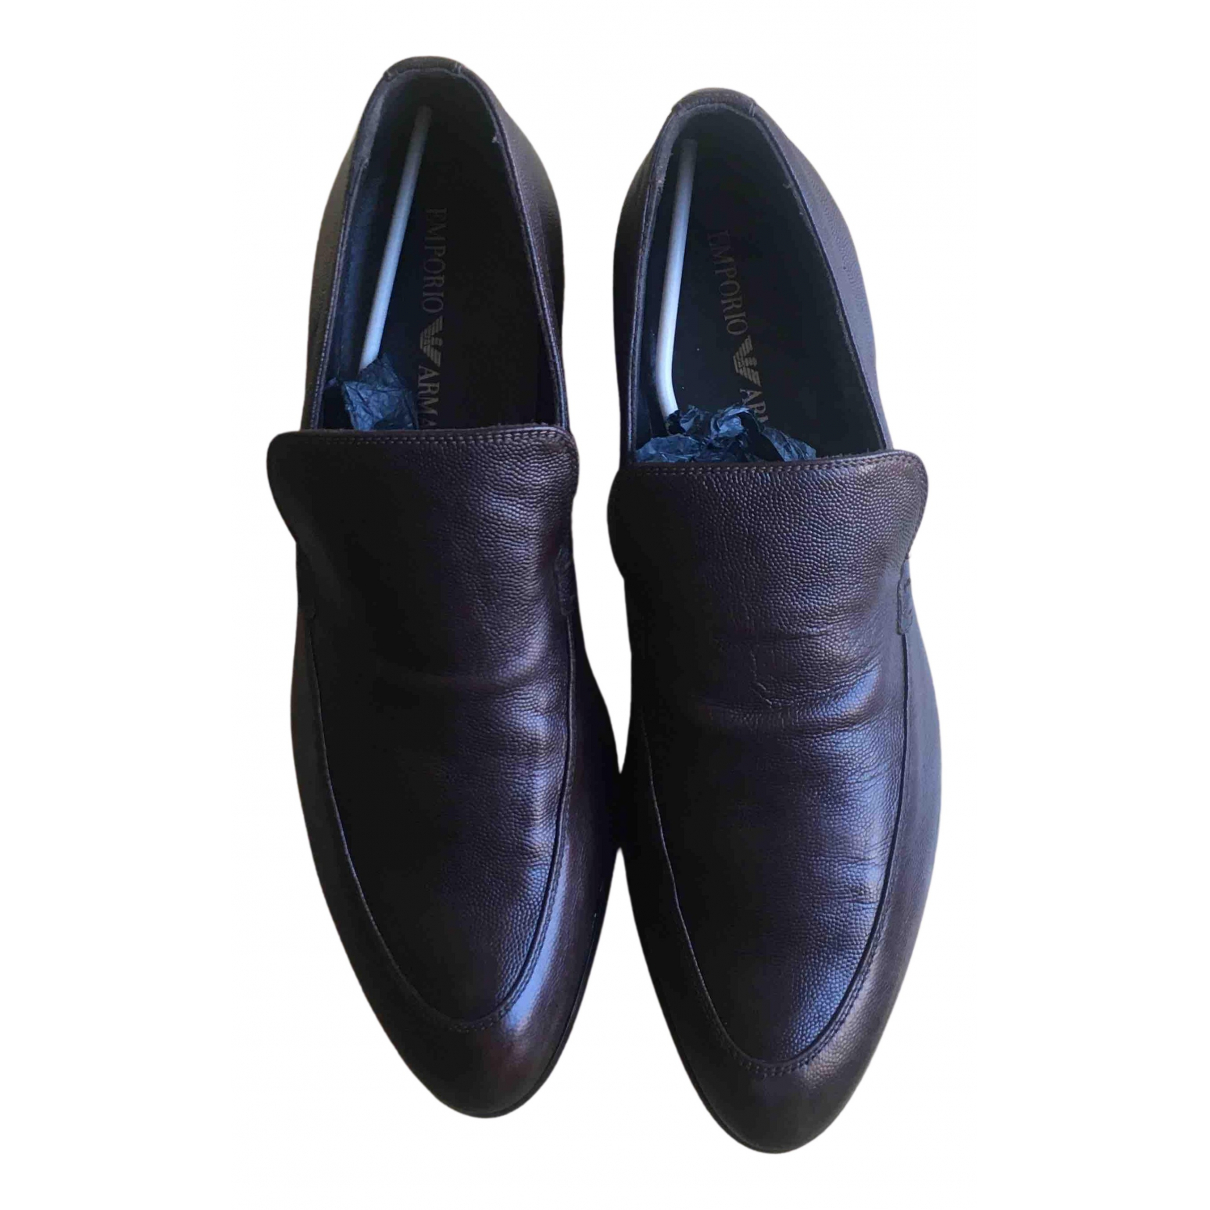 Emporio Armani N Brown Leather Flats for Men 43 EU